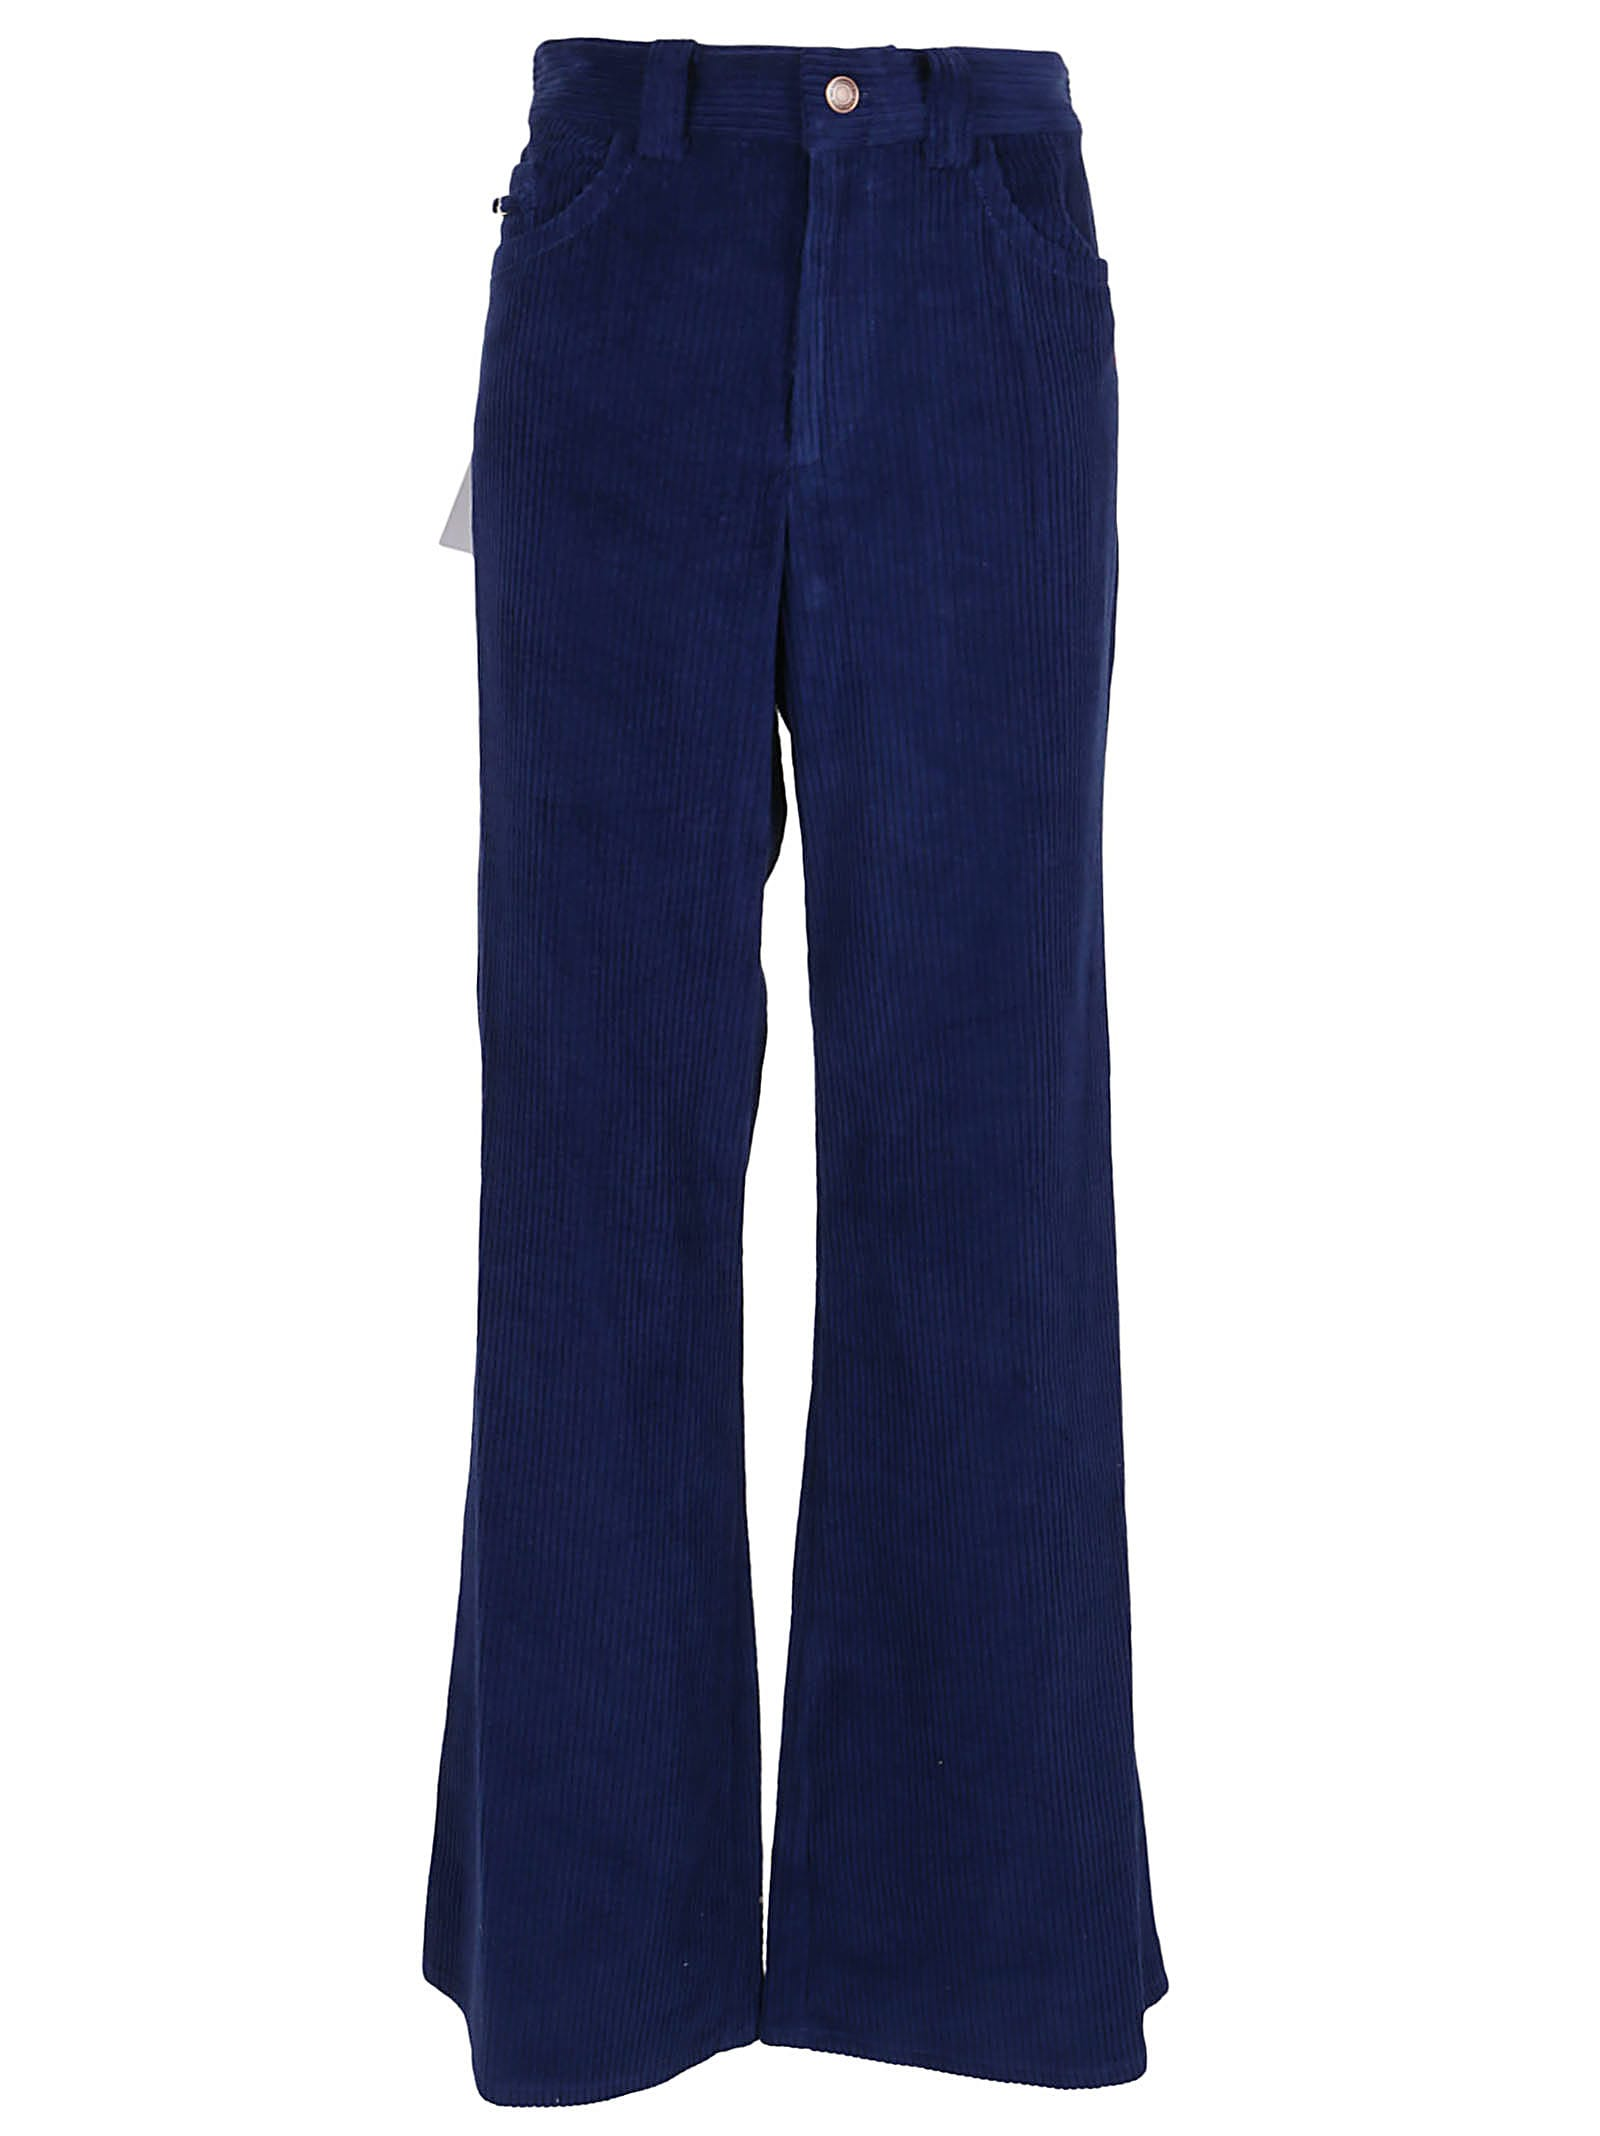 Marc Jacobs Cottons THE FLARED JEAN